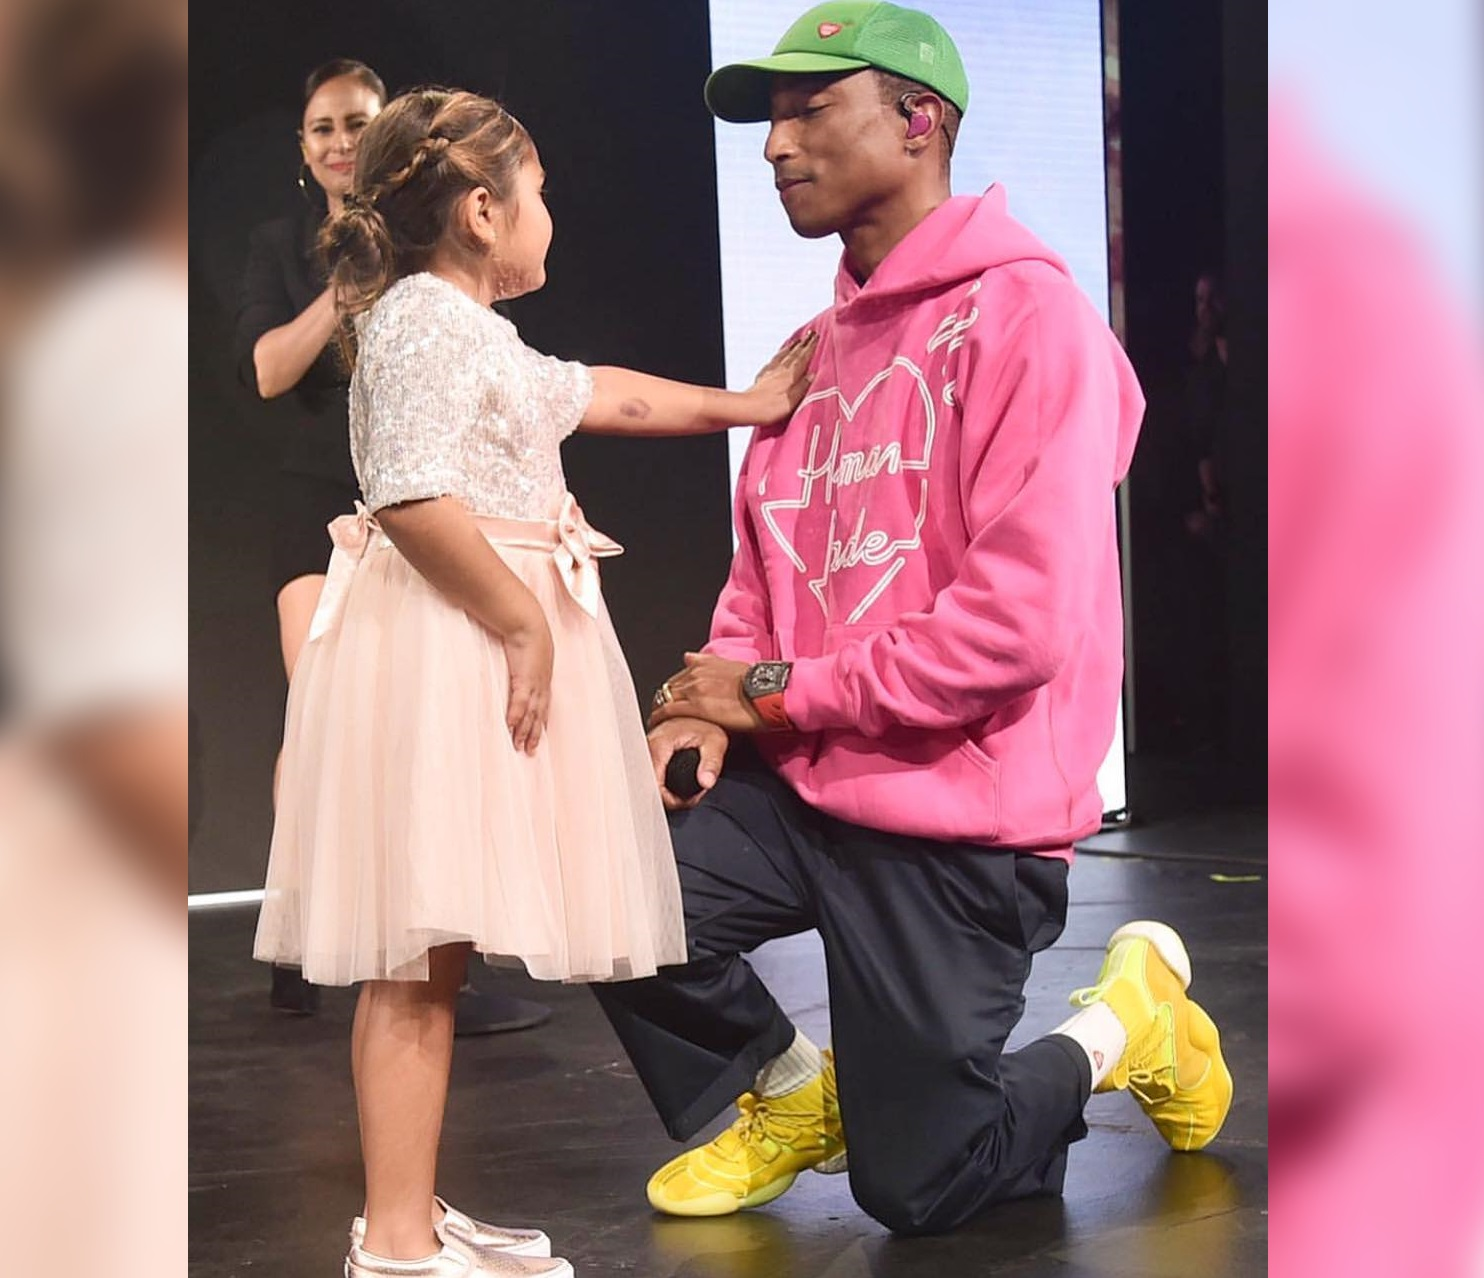 SPOTTED: Pharrell in adidas and Human Made while Performing for Children's Hospital L.A.